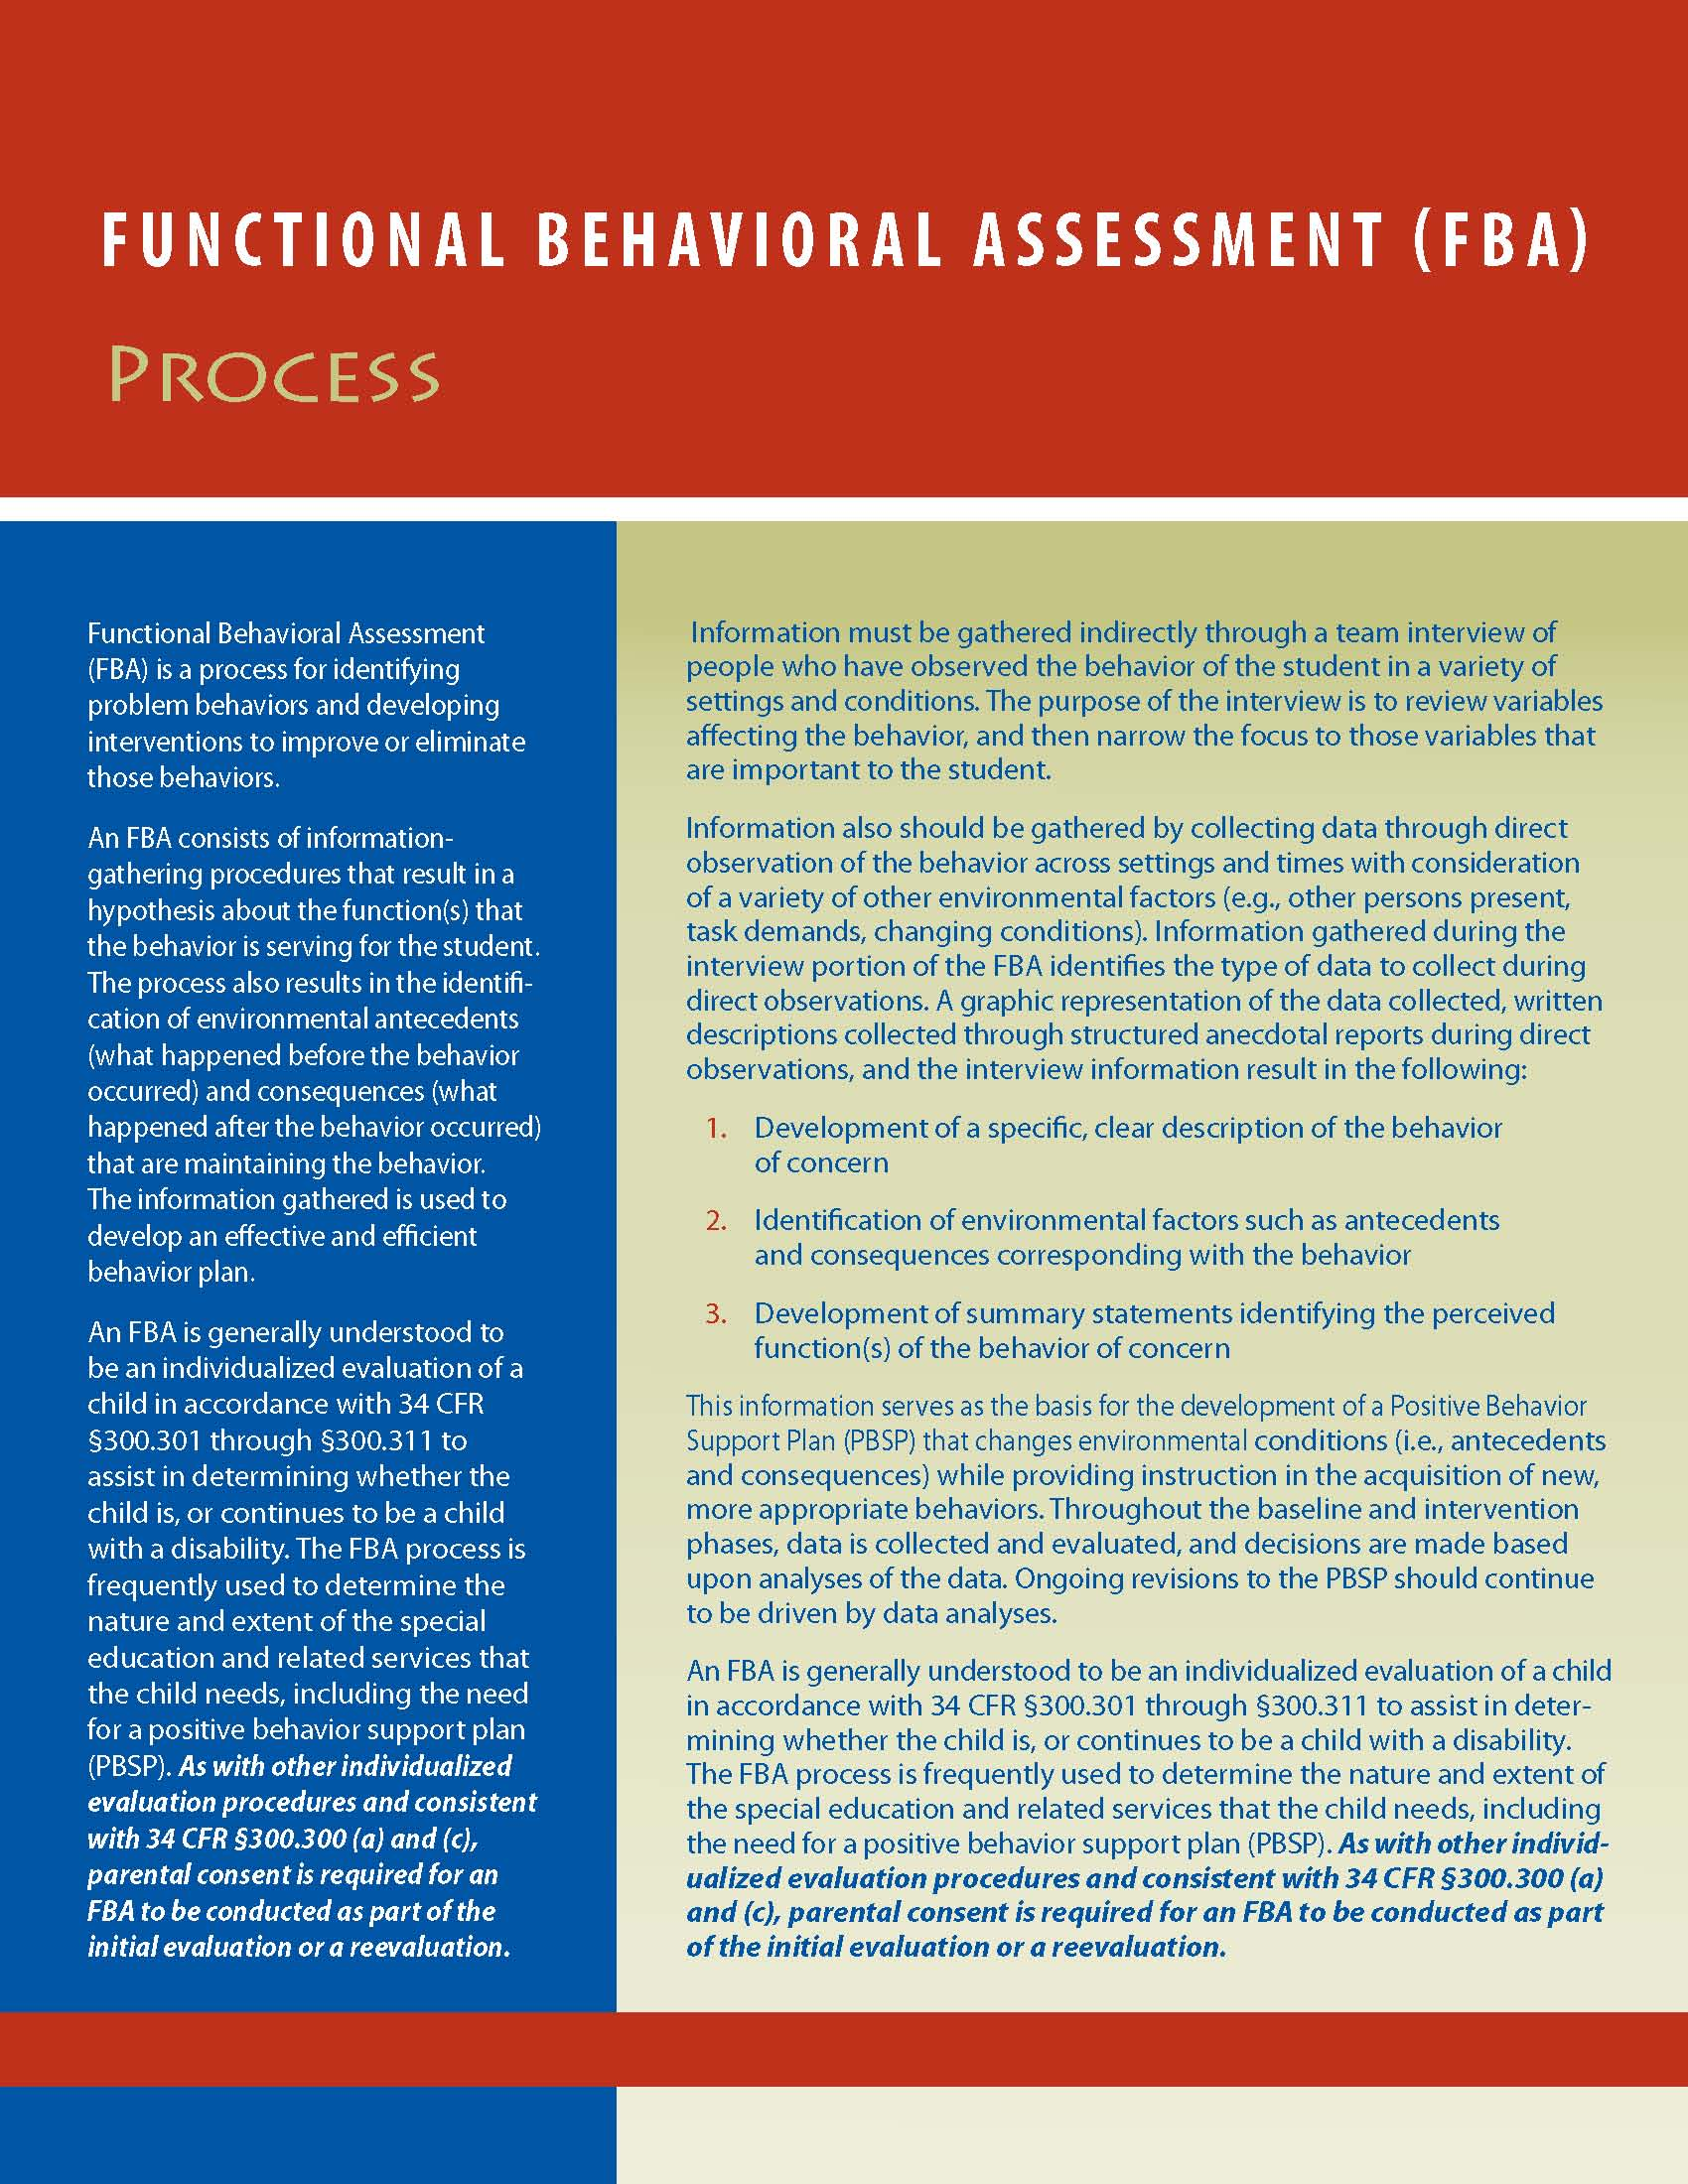 Functional Behavioral Assessment Process